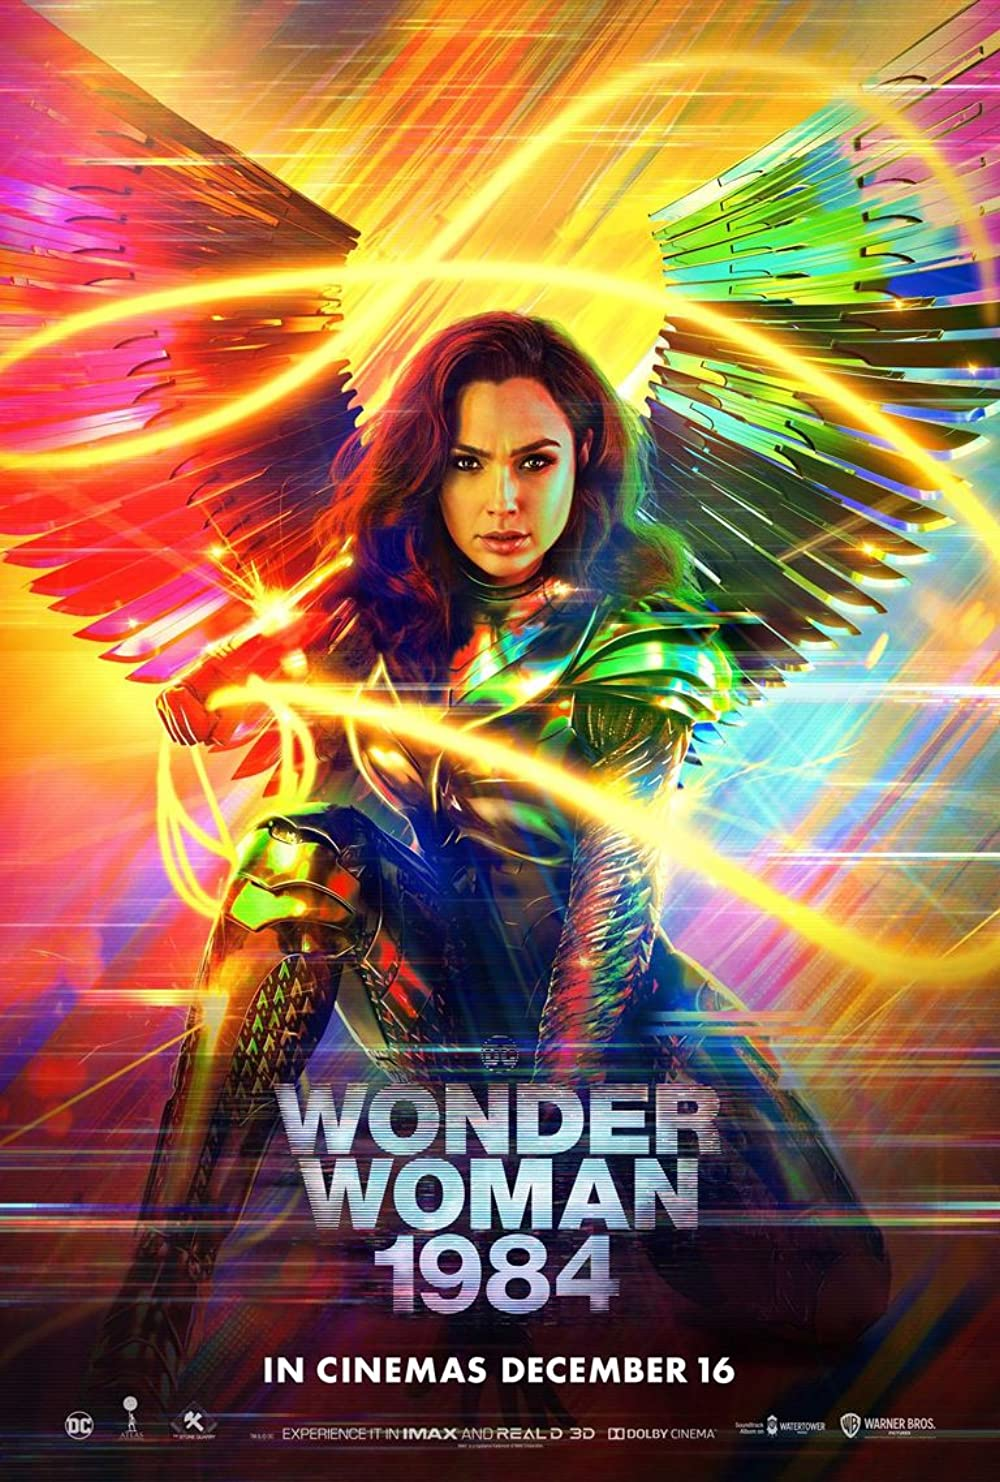 Wonder Woman 1984 (2020) English Full Movie HDRip ESub